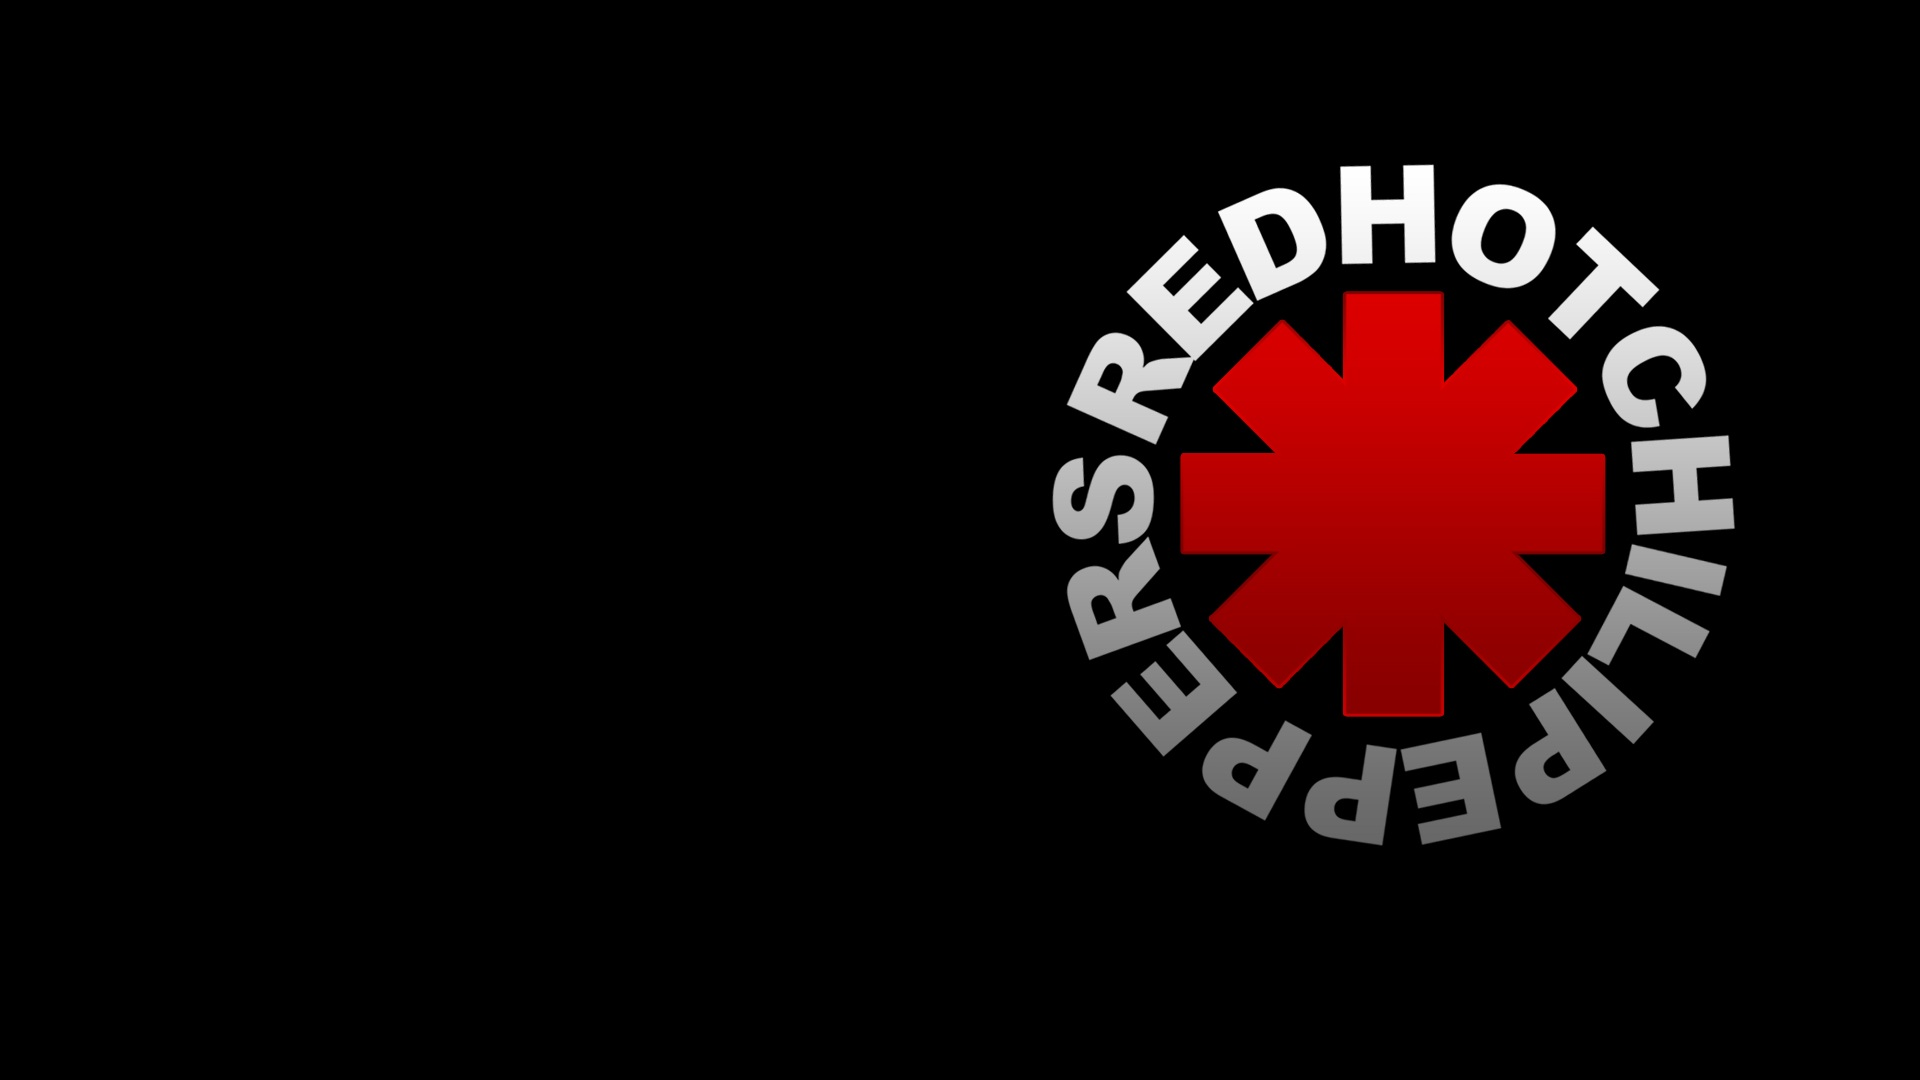 Wallpaper of the day: Red Hot Chili peppers